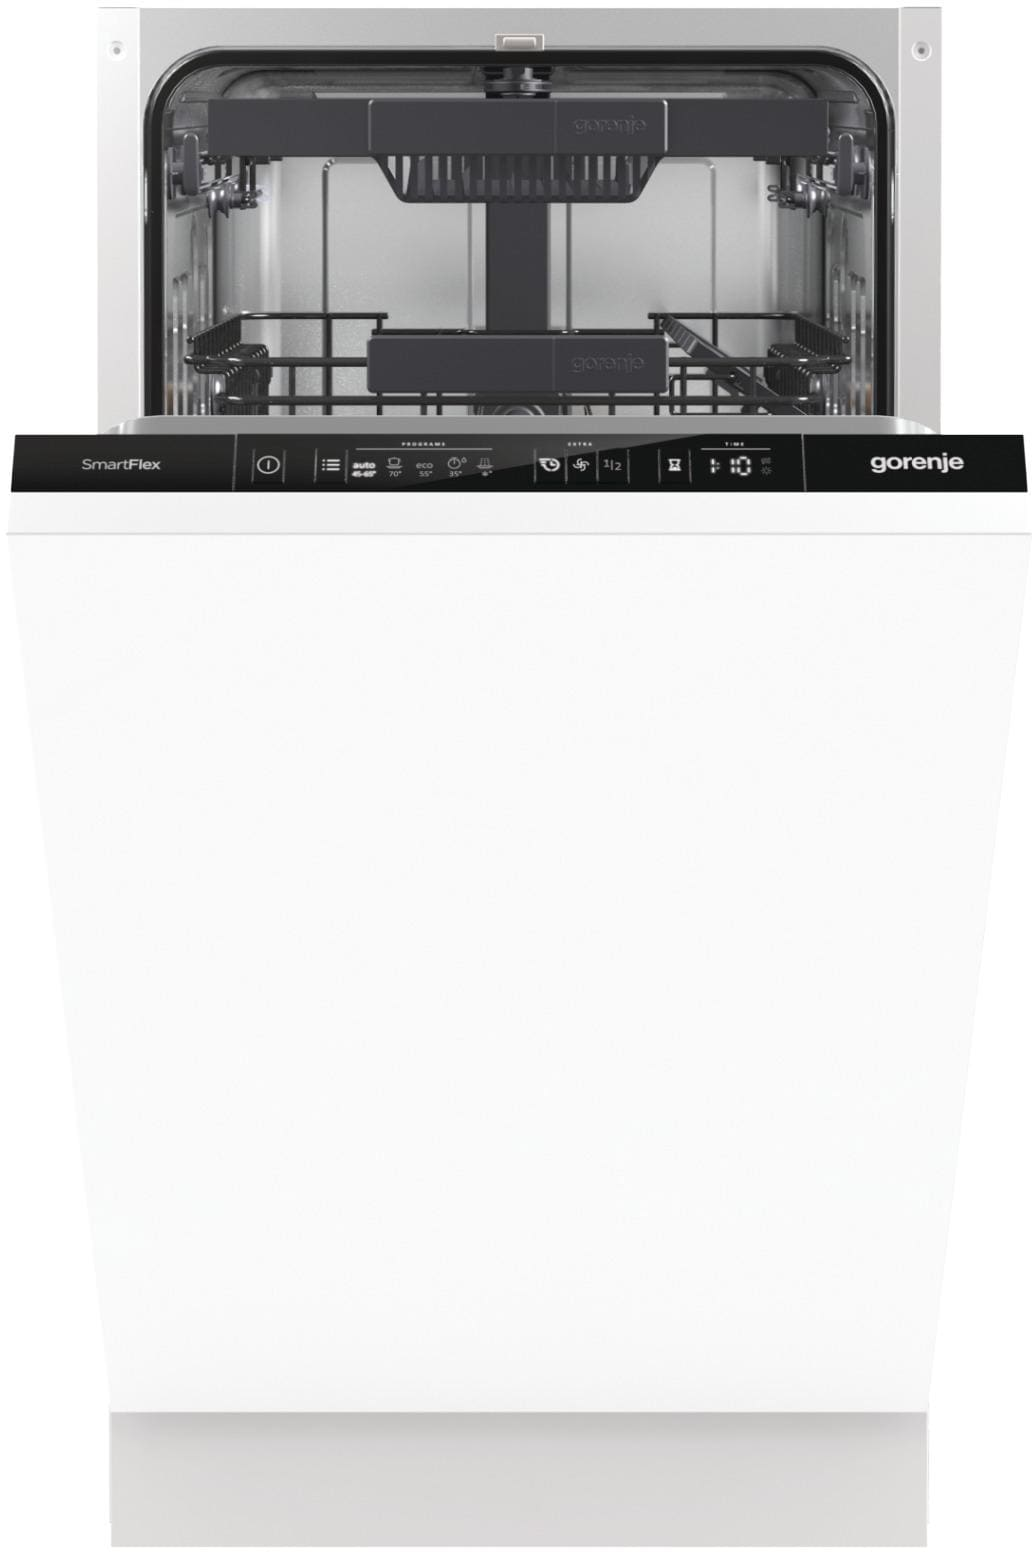 gorenje gv 55110 a vollintegrierbarer einbau geschirrsp ler 45 cm 10 ma gedecke von gorenje. Black Bedroom Furniture Sets. Home Design Ideas